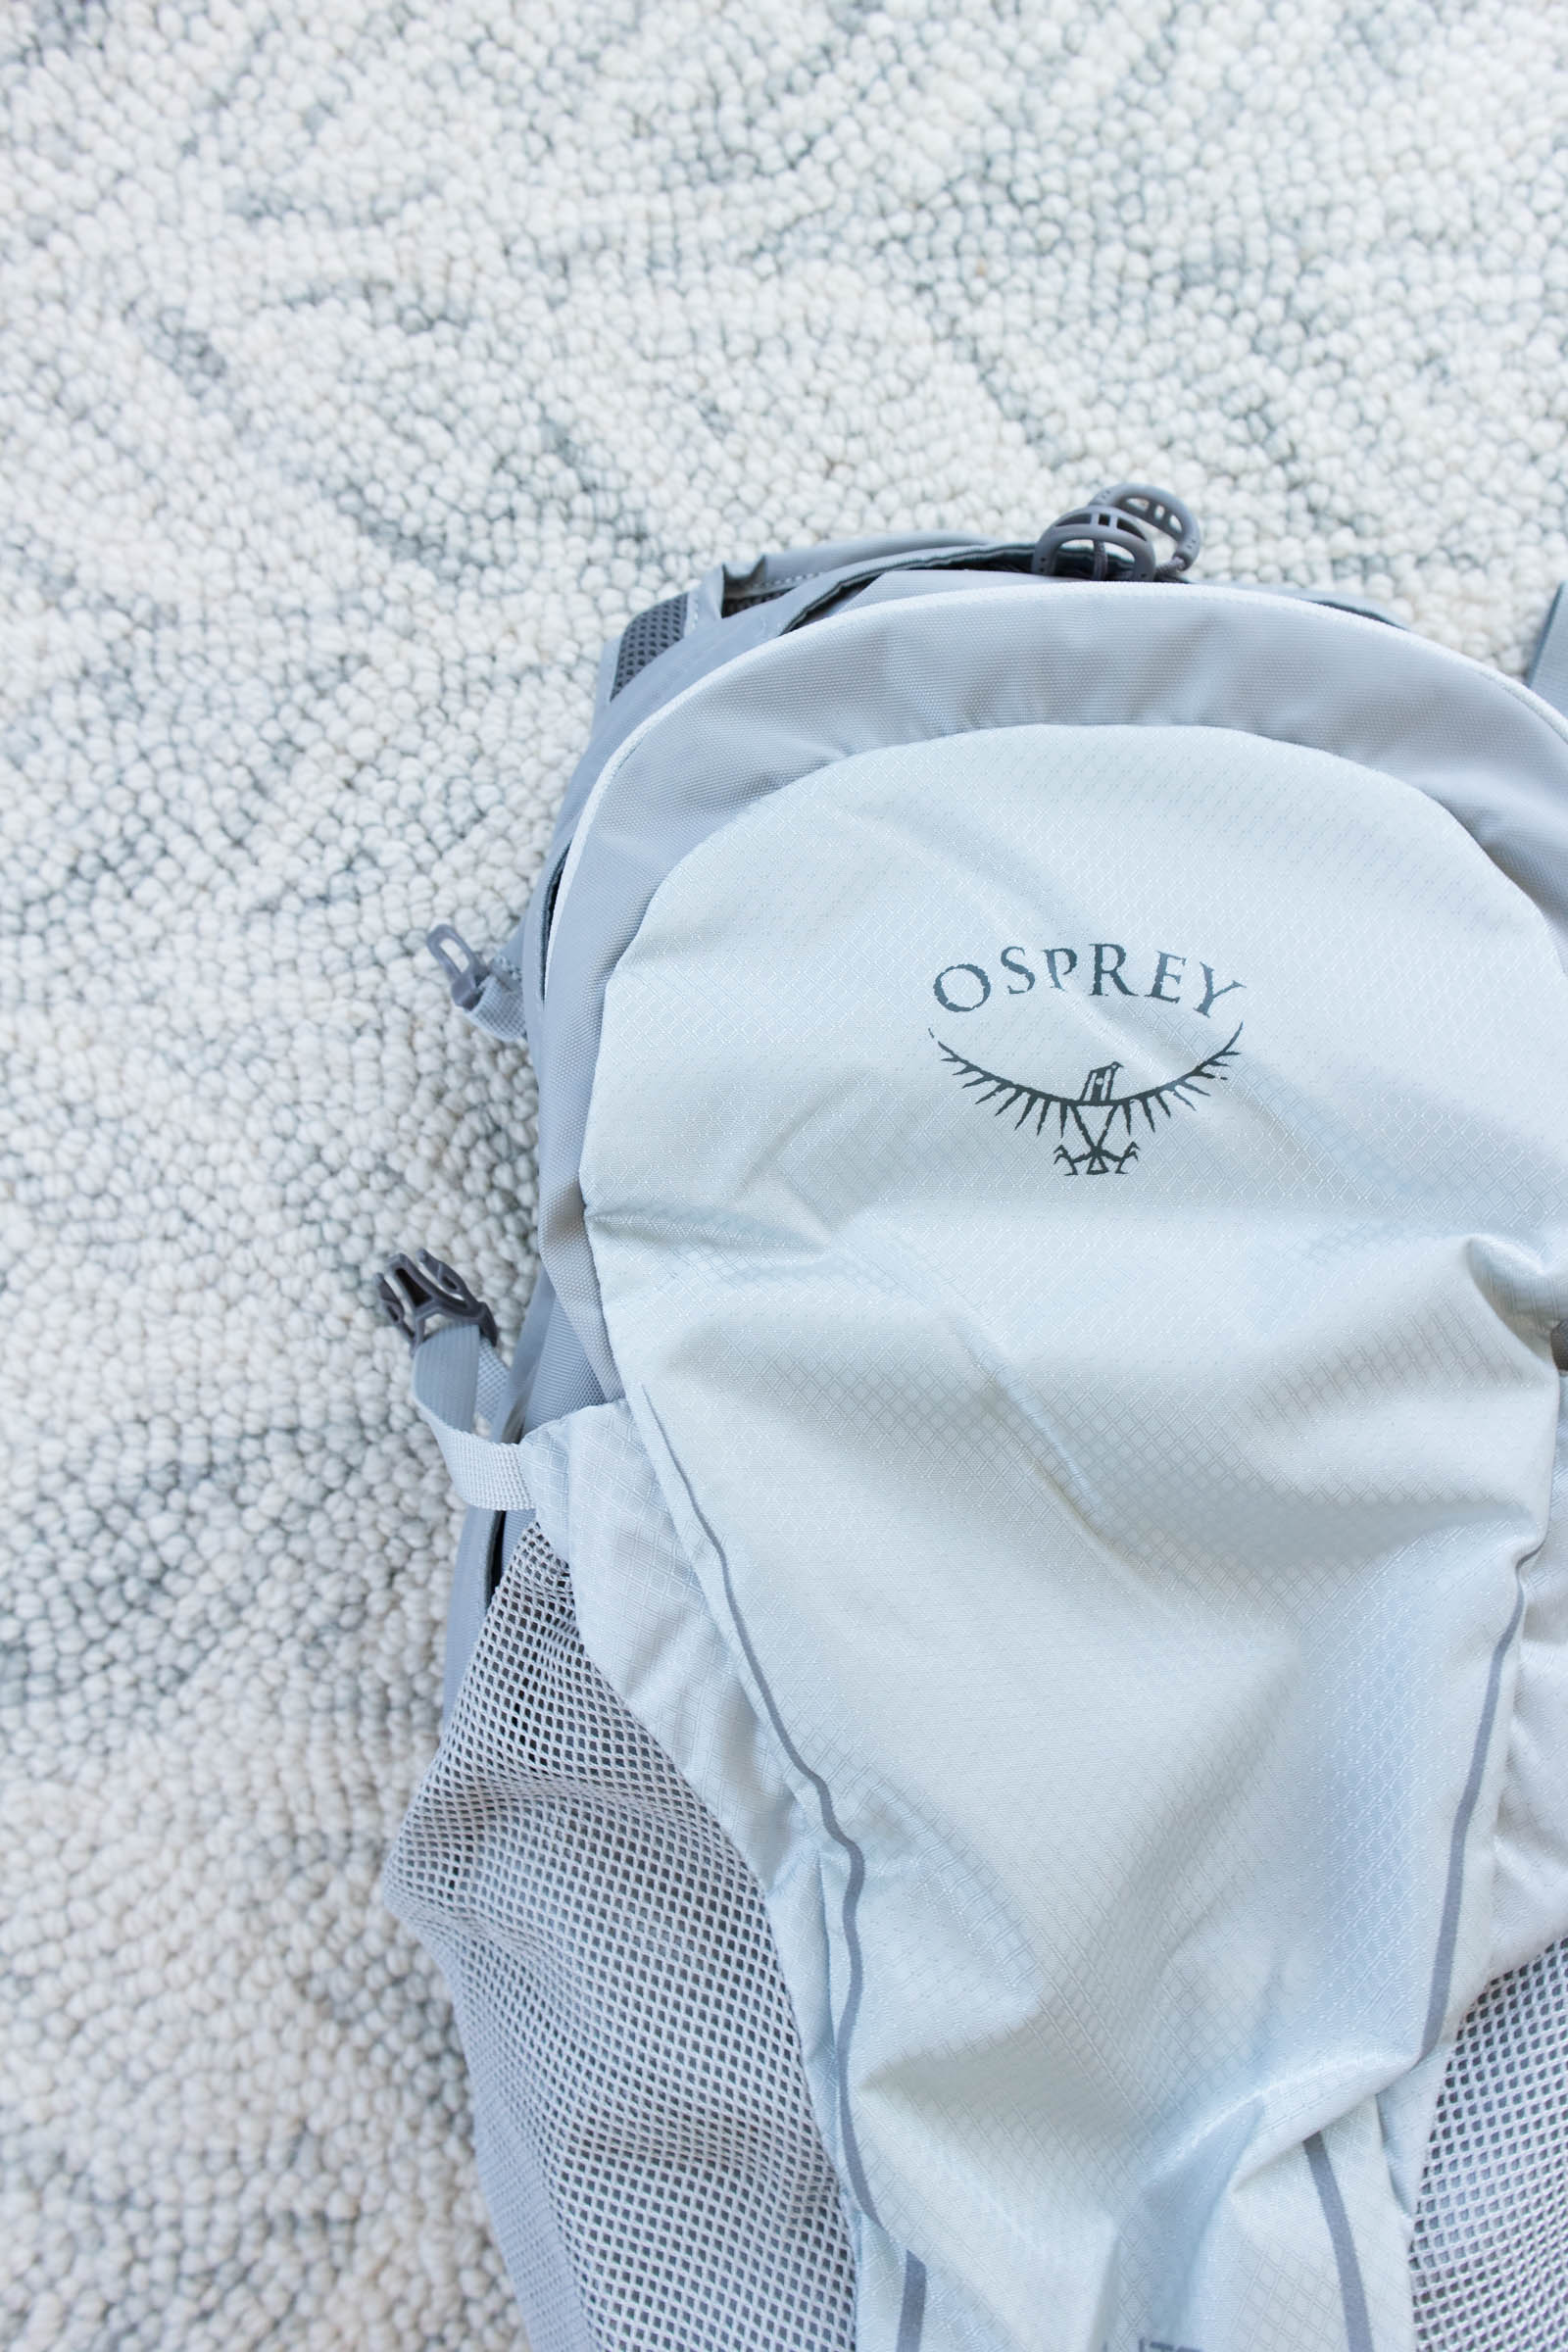 osprey daylite, banff packing guide